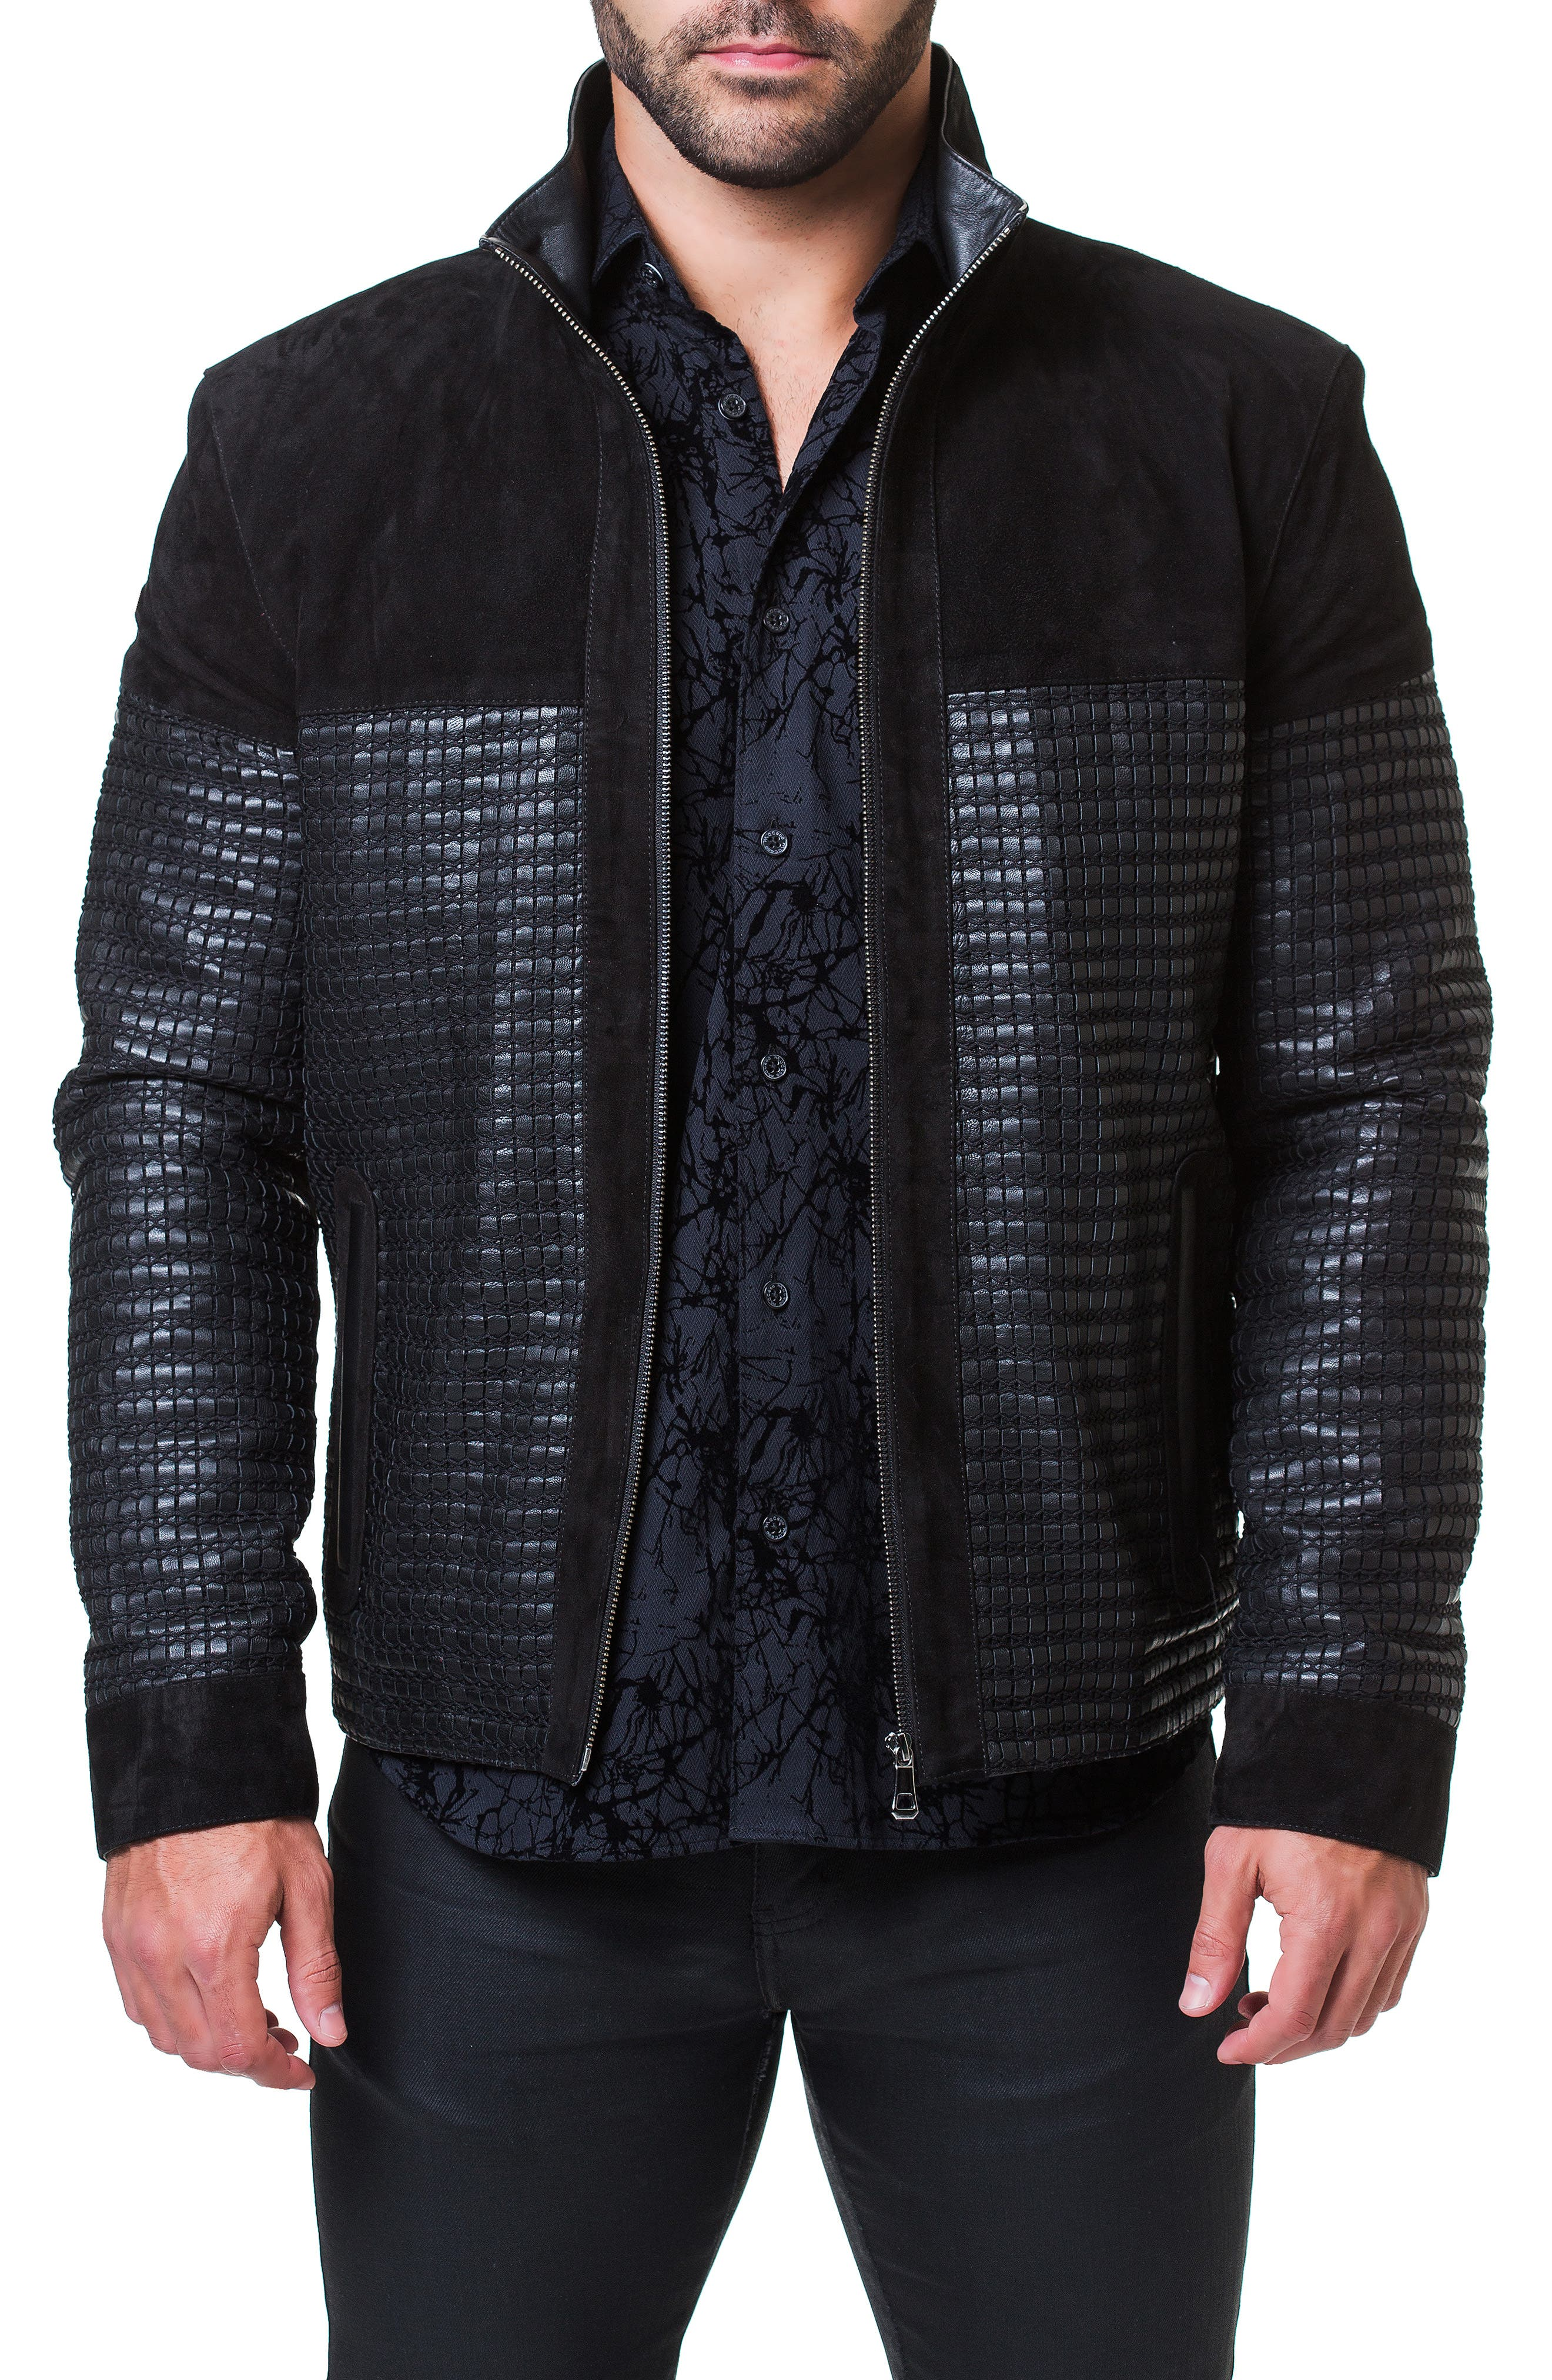 Maceoo Mosaic Leather & Suede Jacket, Black